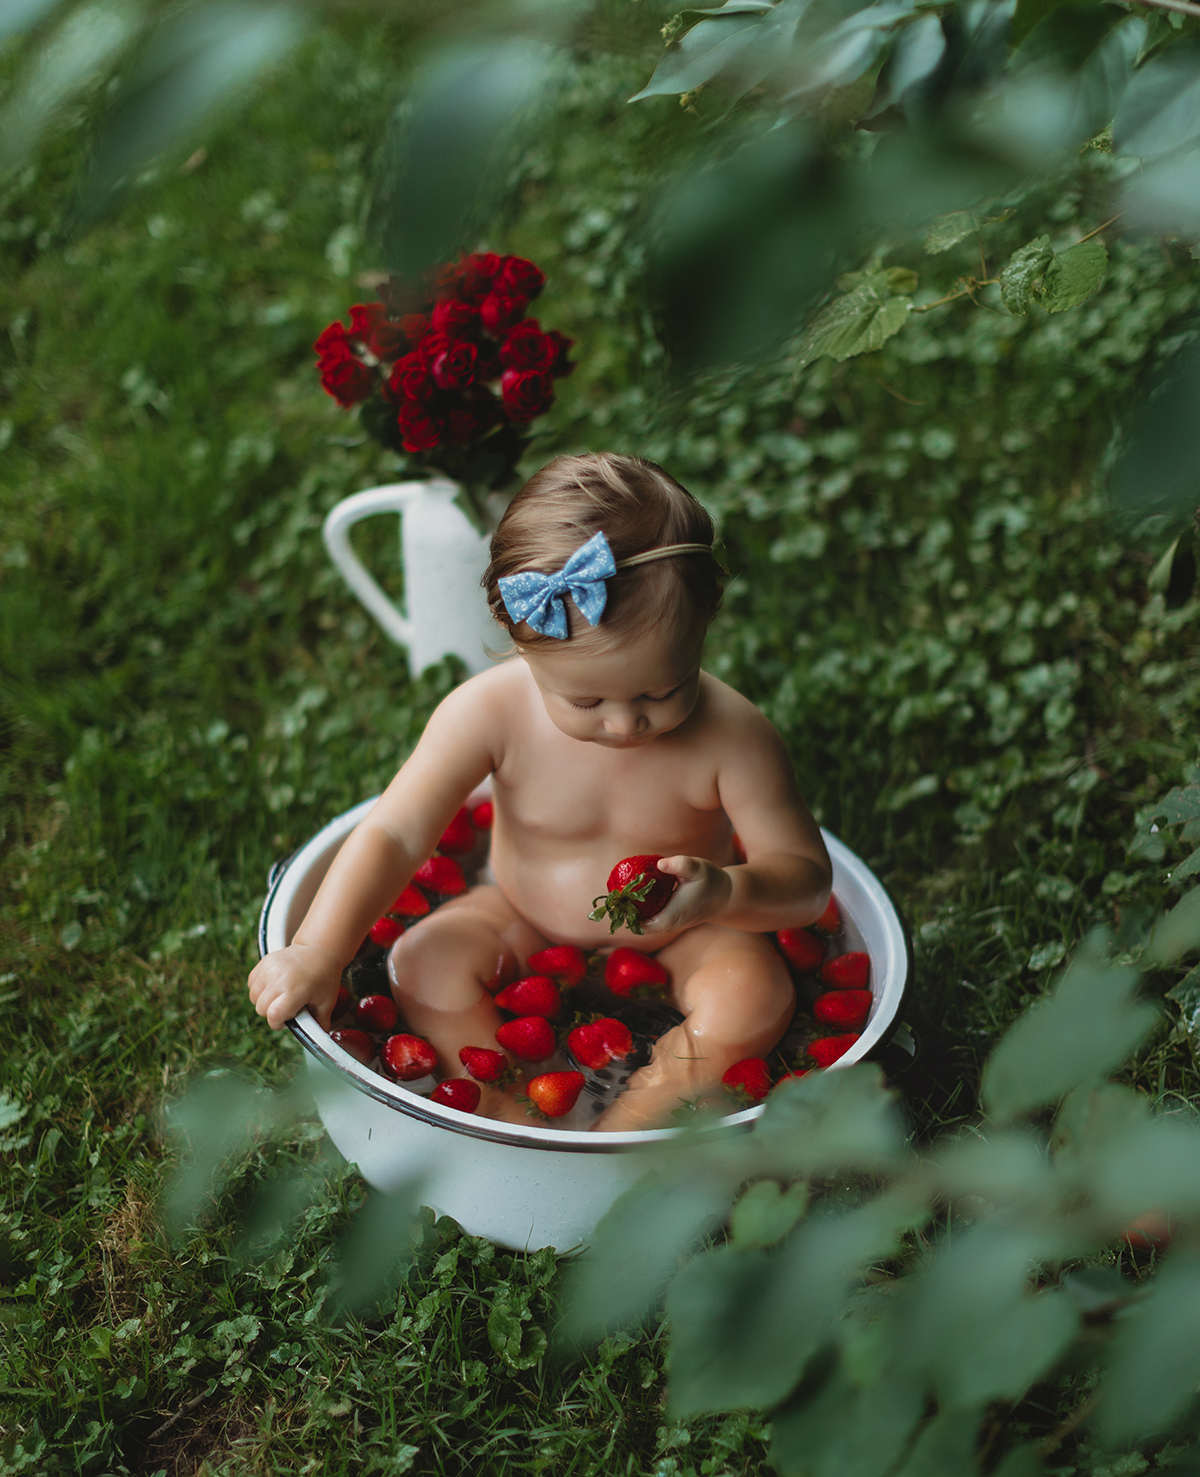 Baby in basin with strawberries